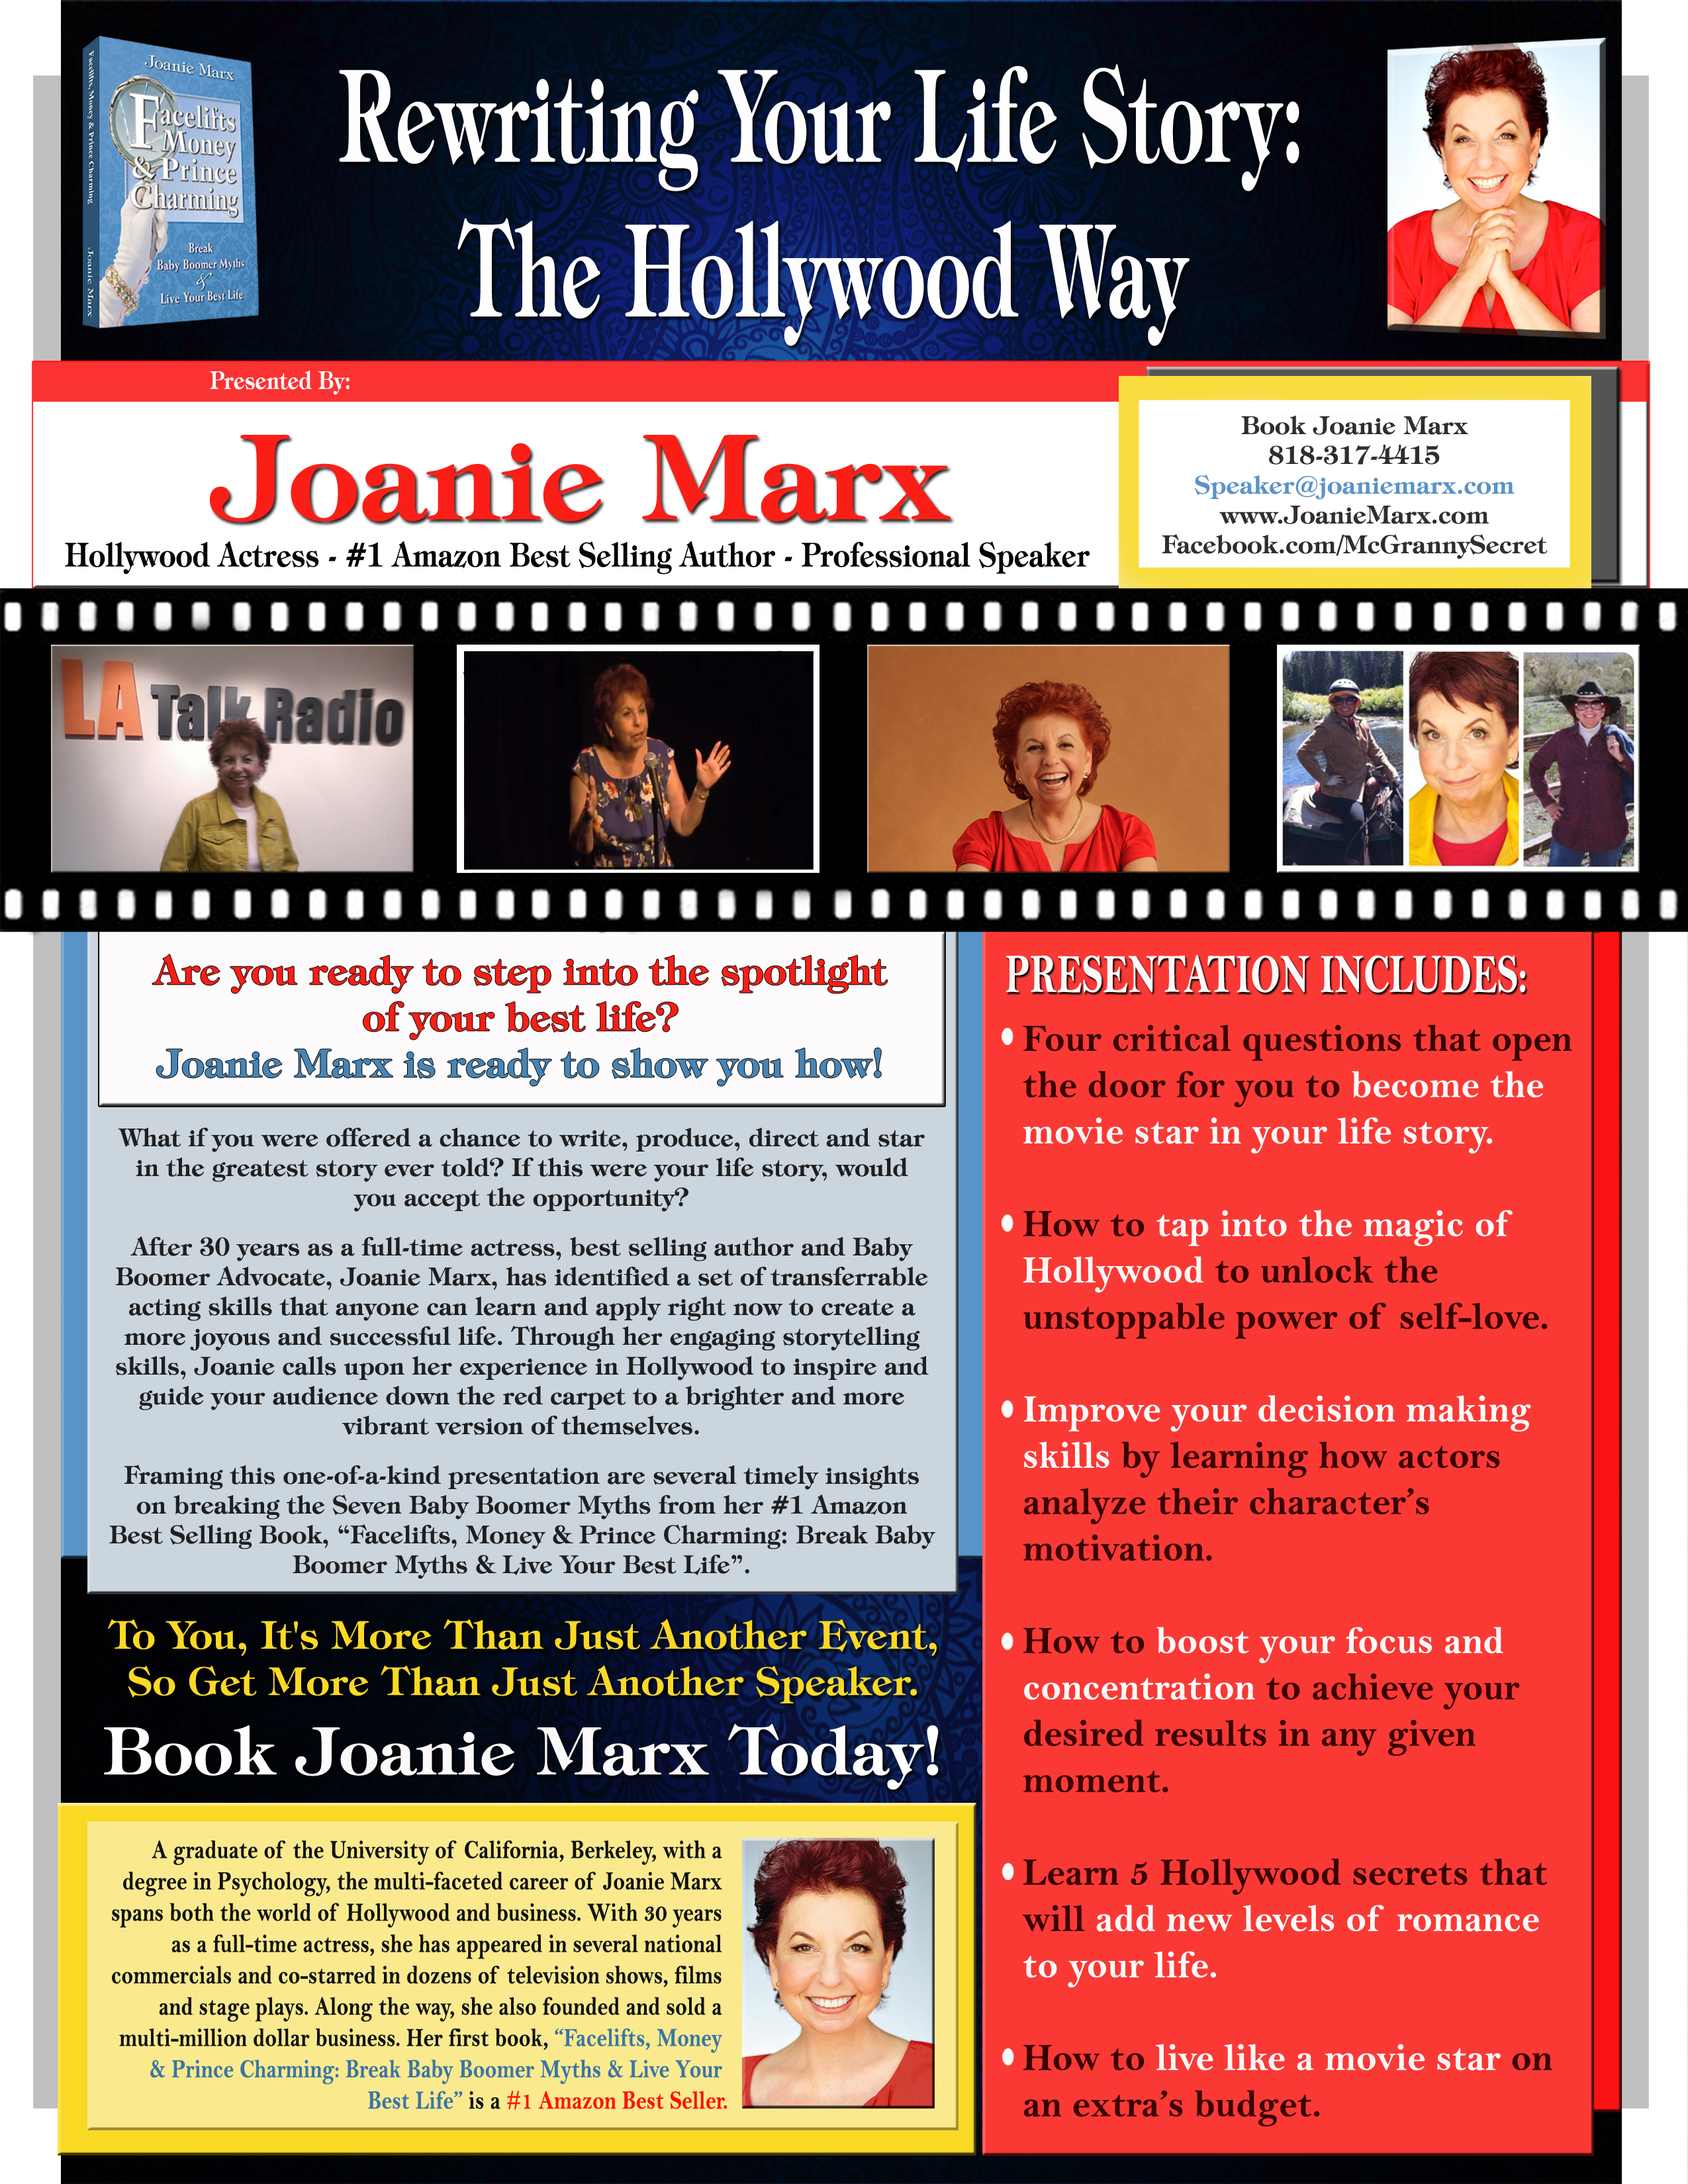 Are you ready to step into the spotlight  of your best life? Joanie Marx is ready to show you how!